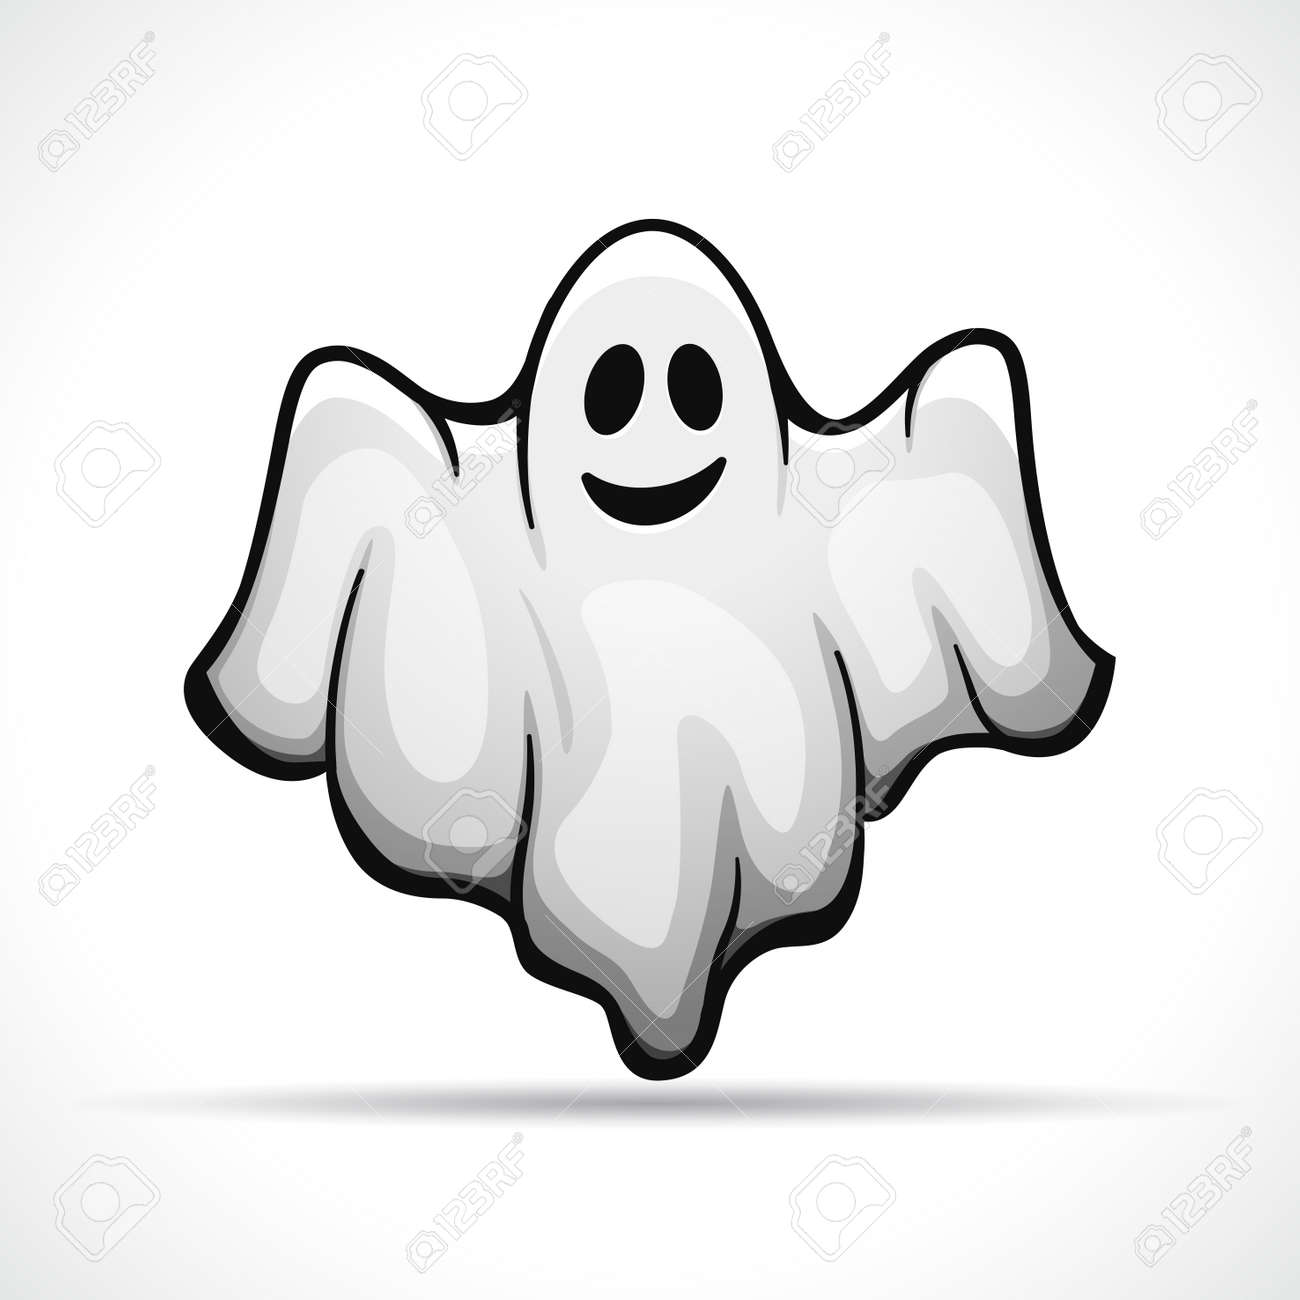 Vector illustration of ghost on white background - 110041503